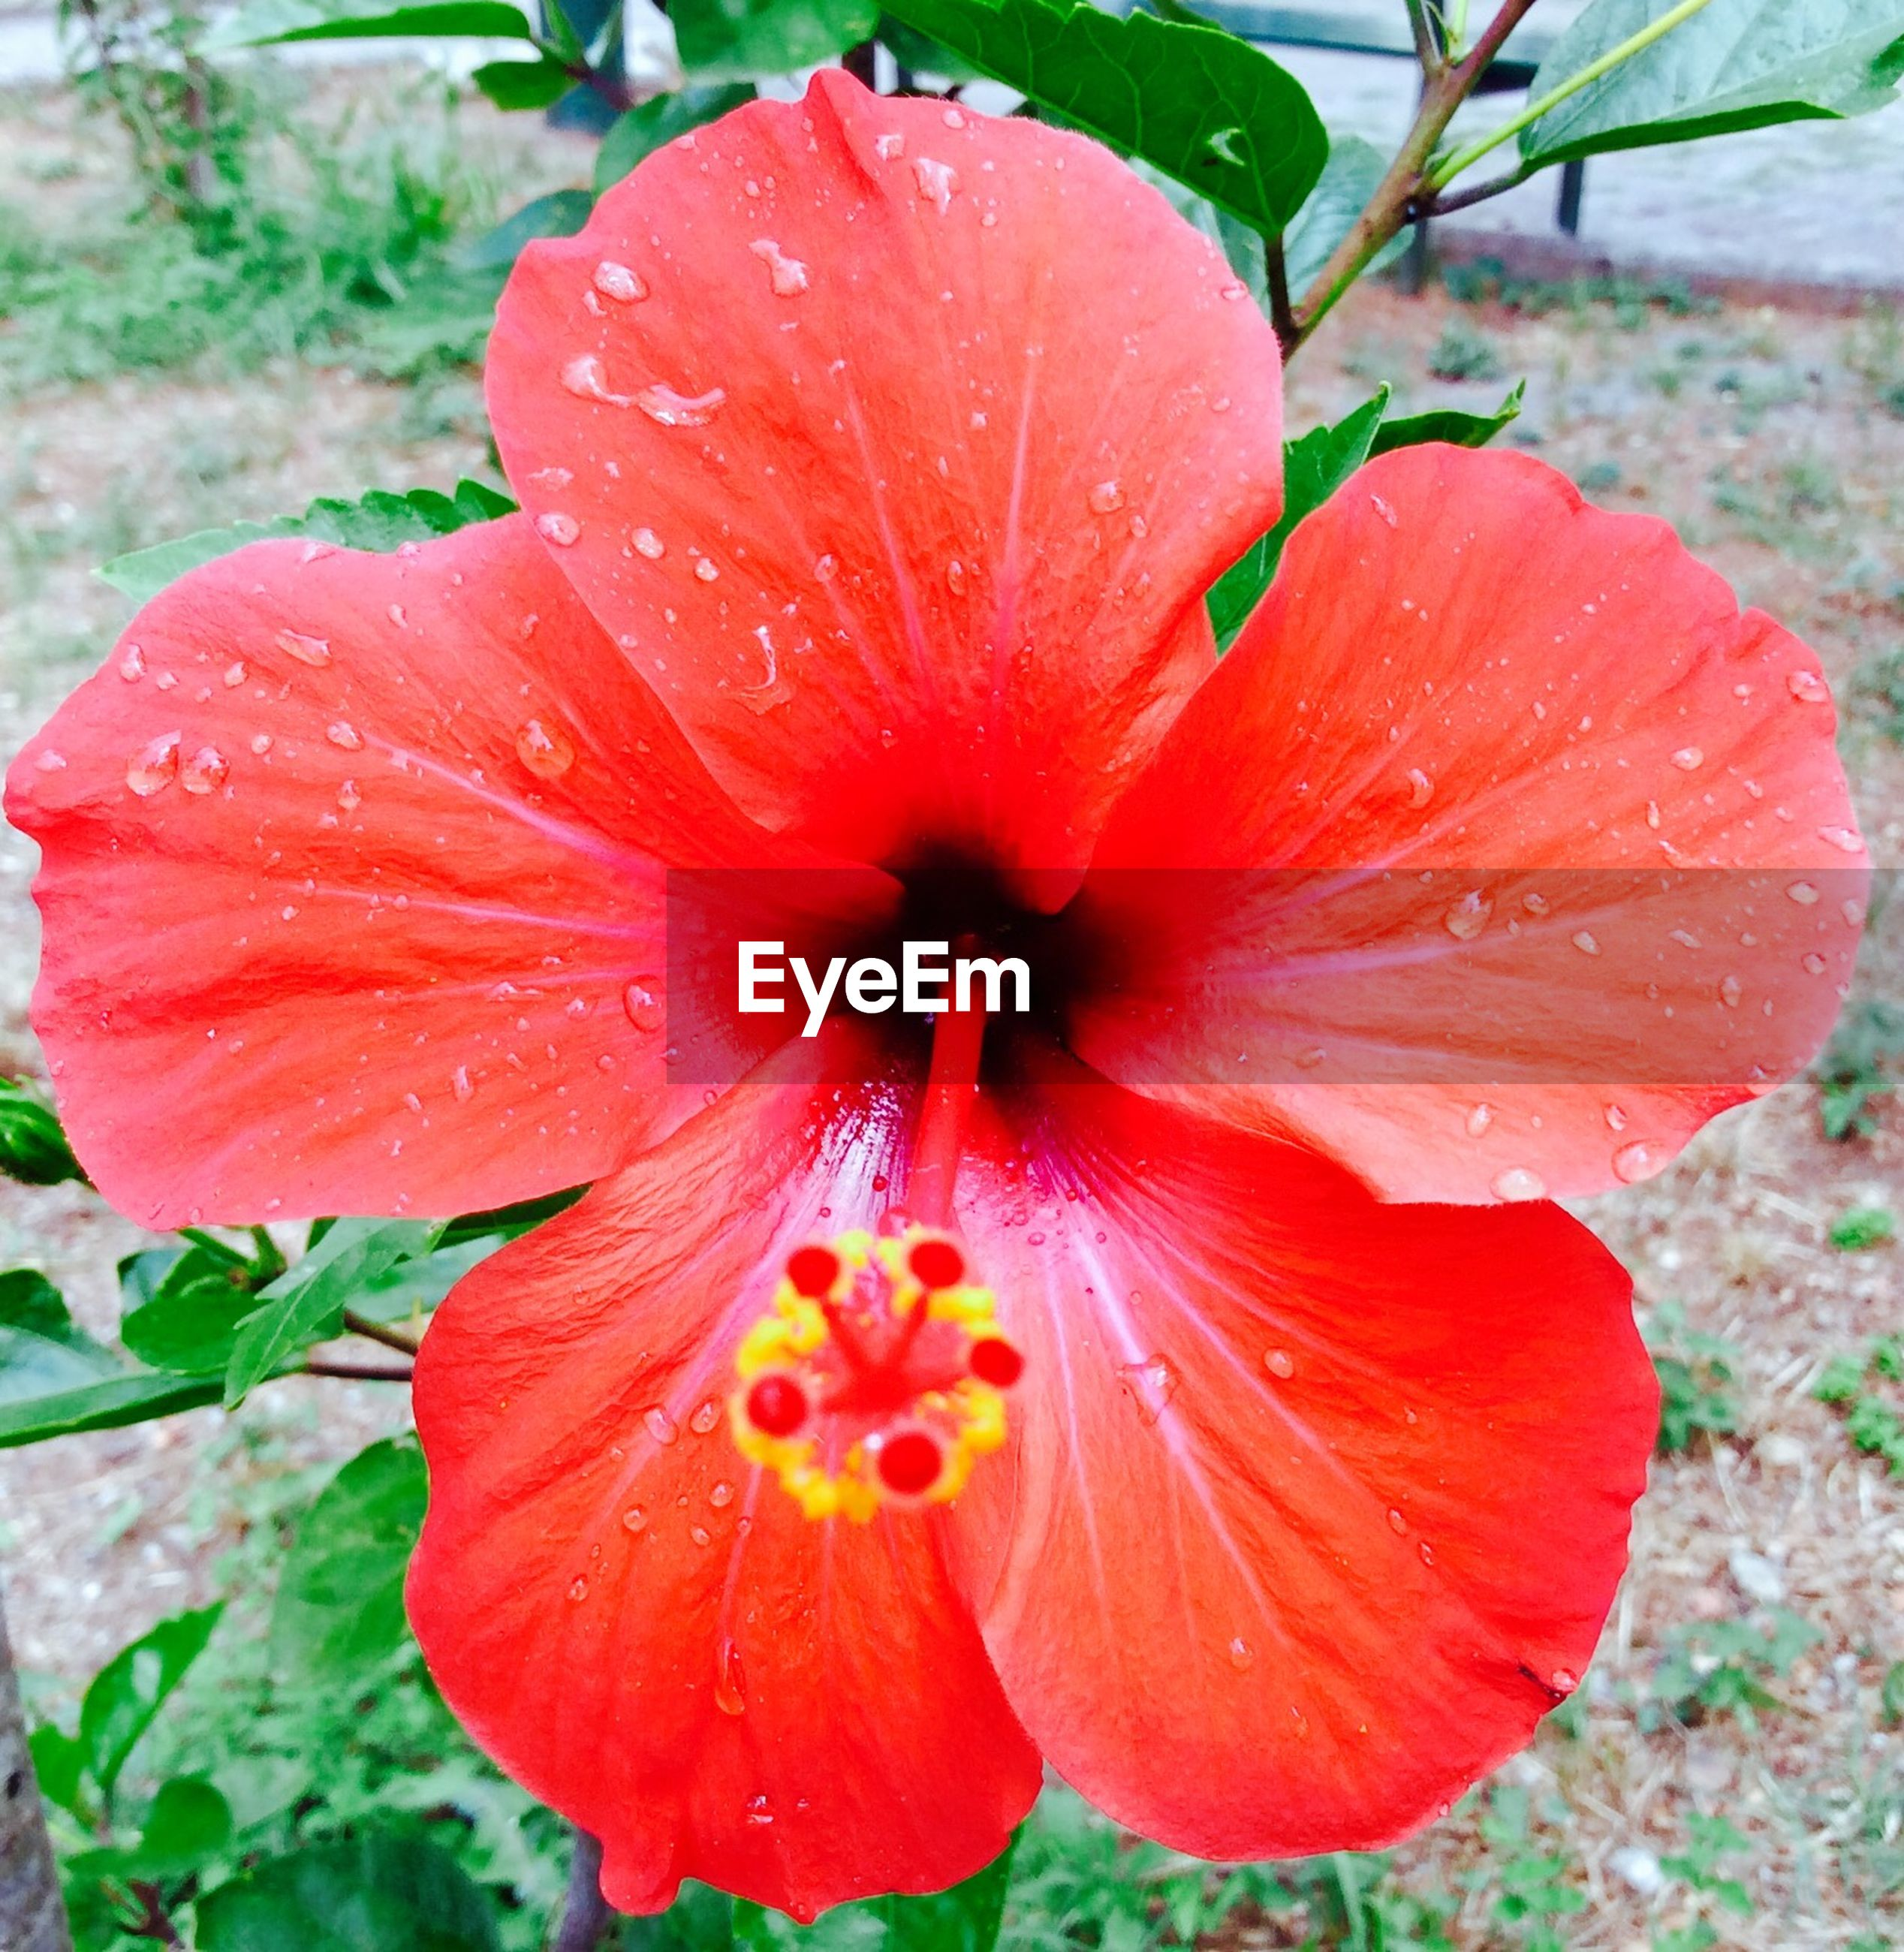 flower, freshness, petal, flower head, fragility, growth, beauty in nature, red, close-up, single flower, nature, blooming, plant, focus on foreground, stamen, pollen, wet, in bloom, drop, hibiscus